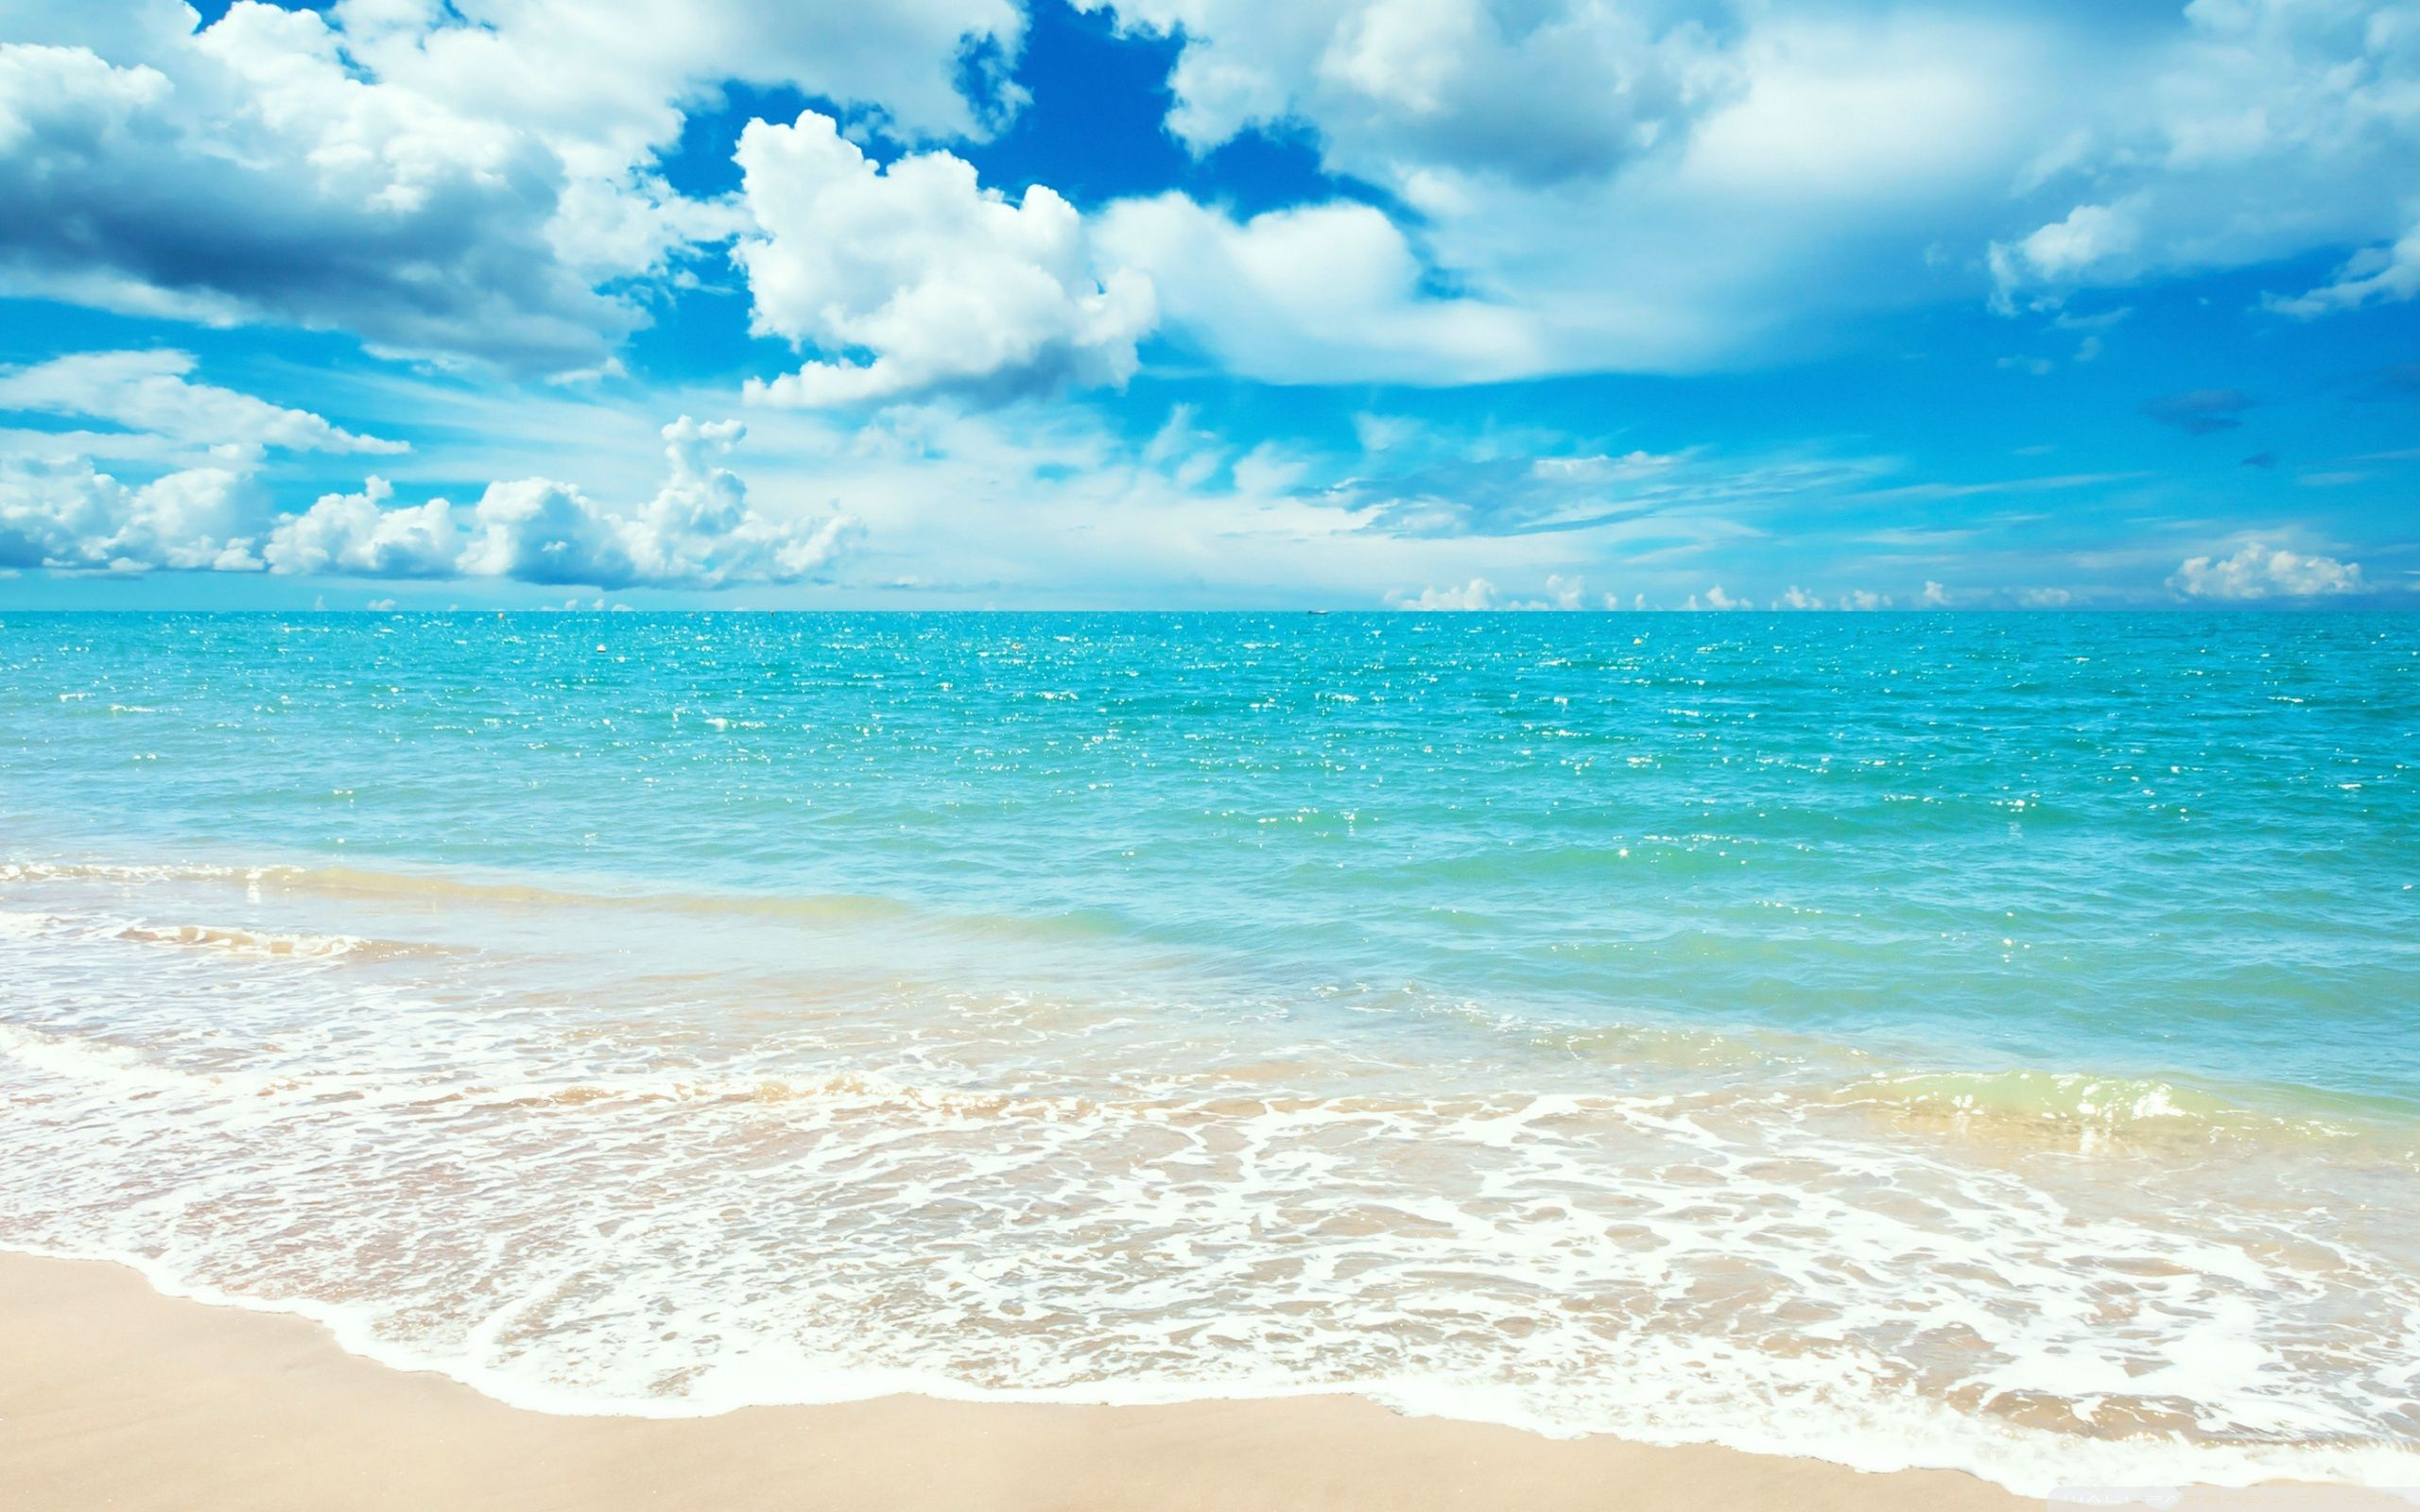 Microsoft Beach Desktop Backgrounds Hd Wallpaper Full